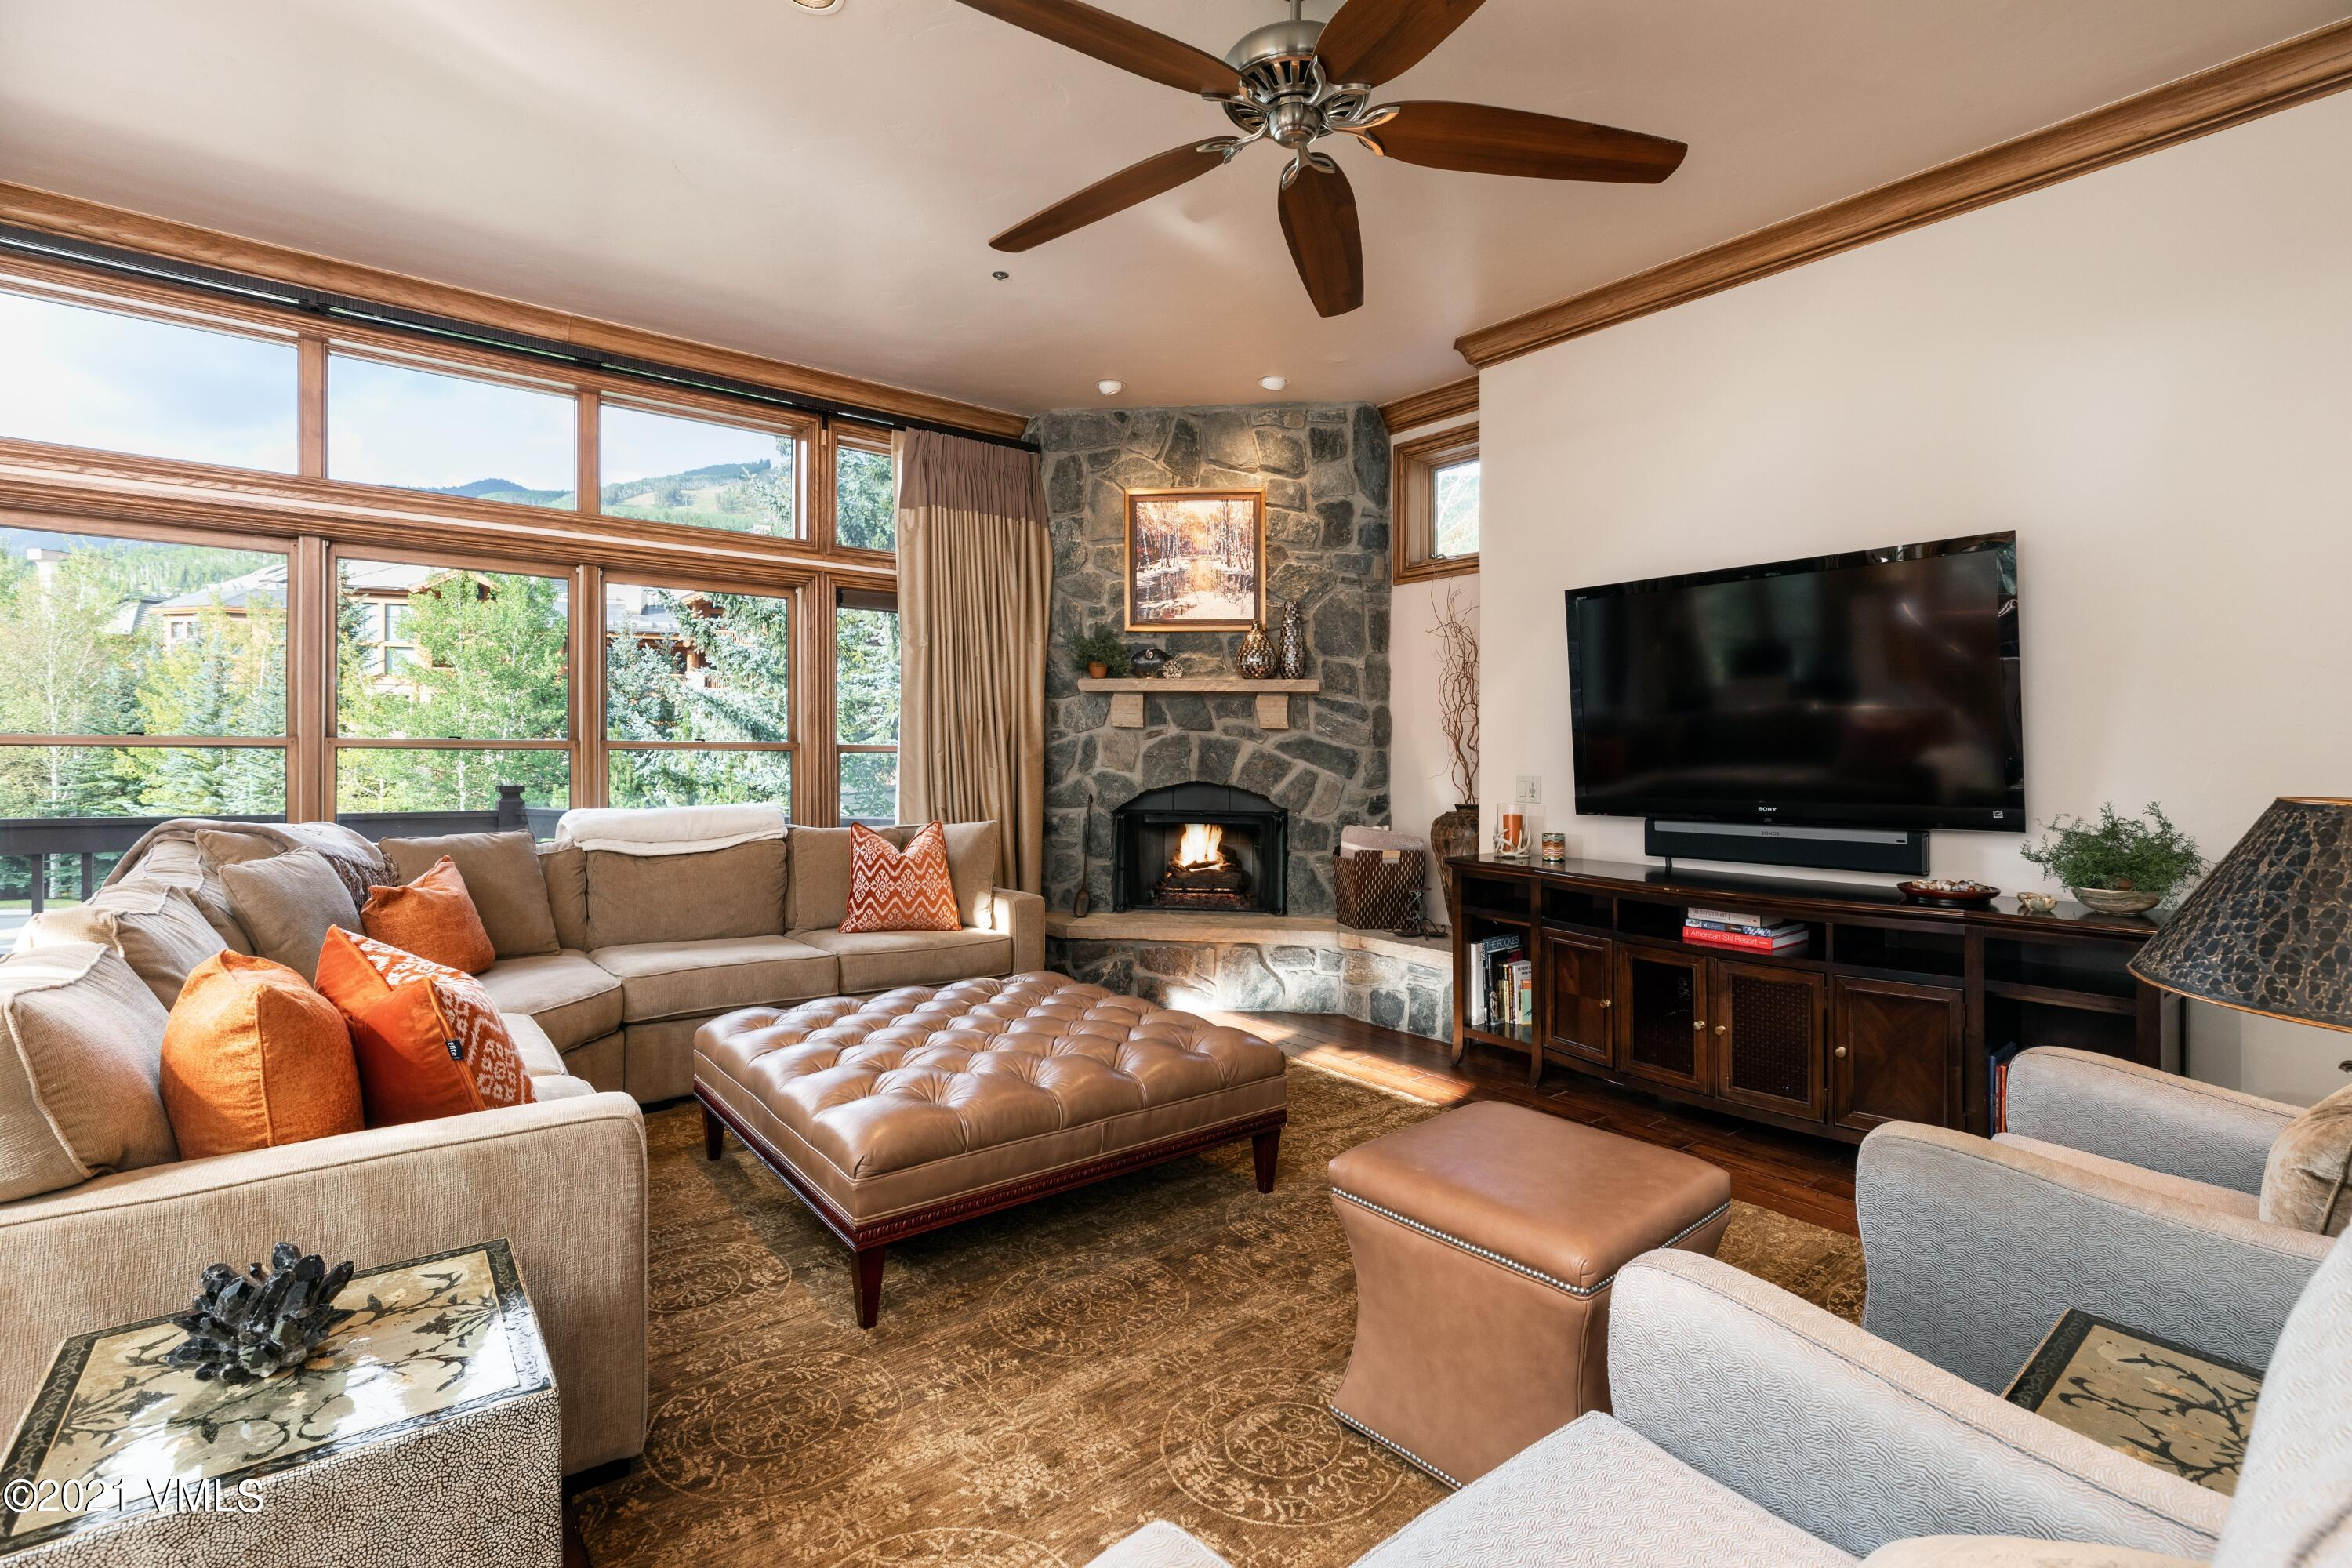 This stunning air-conditioned townhome is the most spacious of the Ironwood community. Additional decks and windows bring in an abundance of natural light, big mountain and ski slope views. Featuring interiors by Slifer Designs, a Chair 14 and turnkey appointments makes this home perfect for any active mountain family.